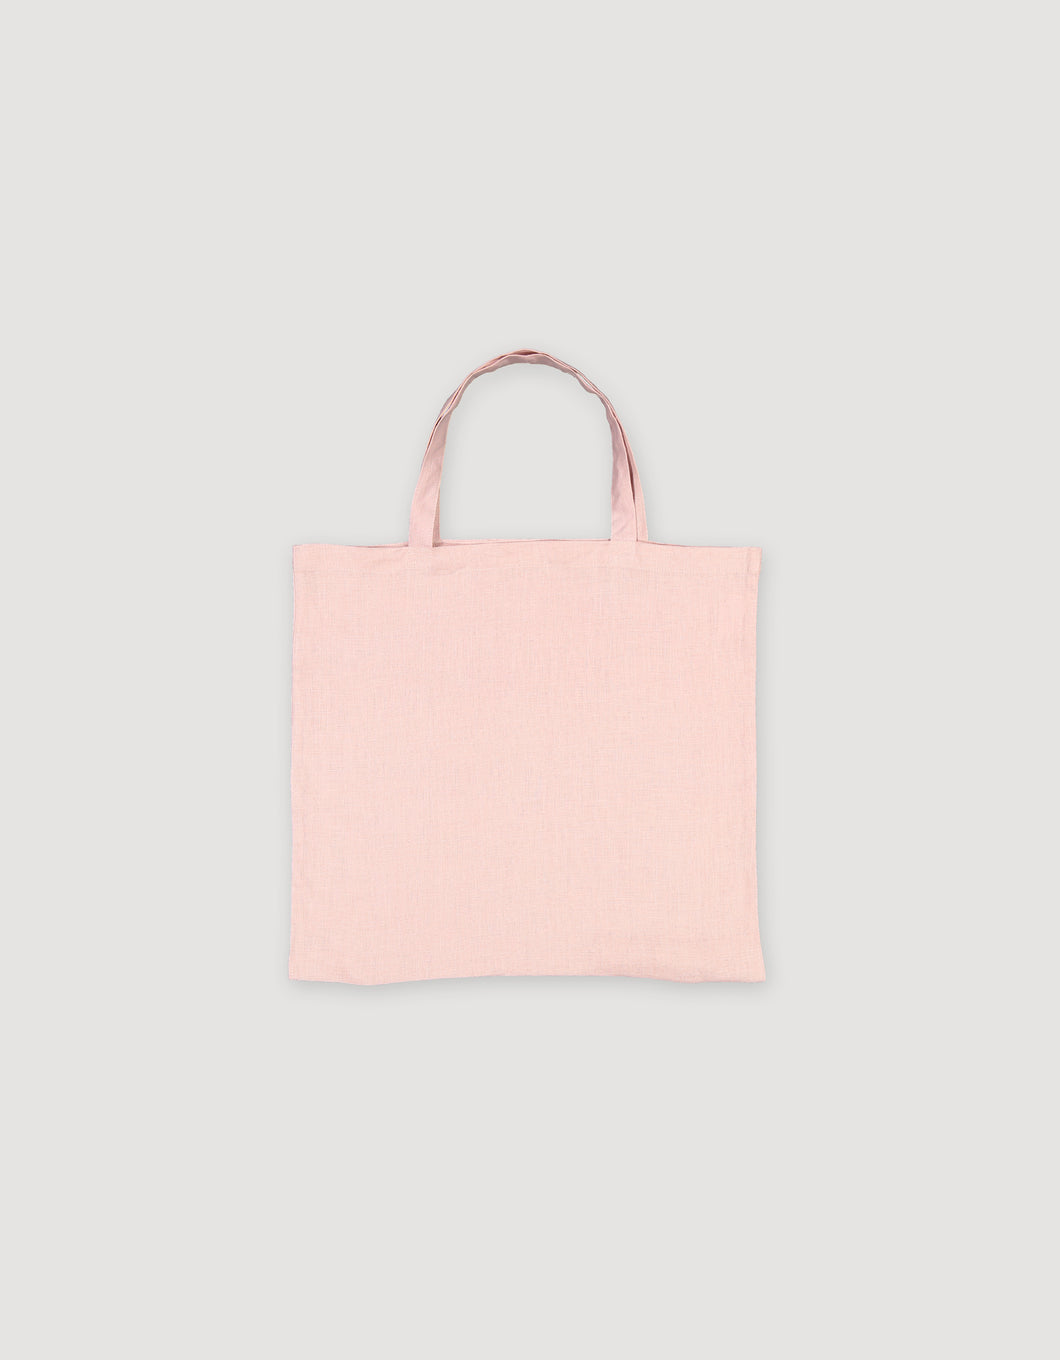 TOTE BAG (FADED PINK)